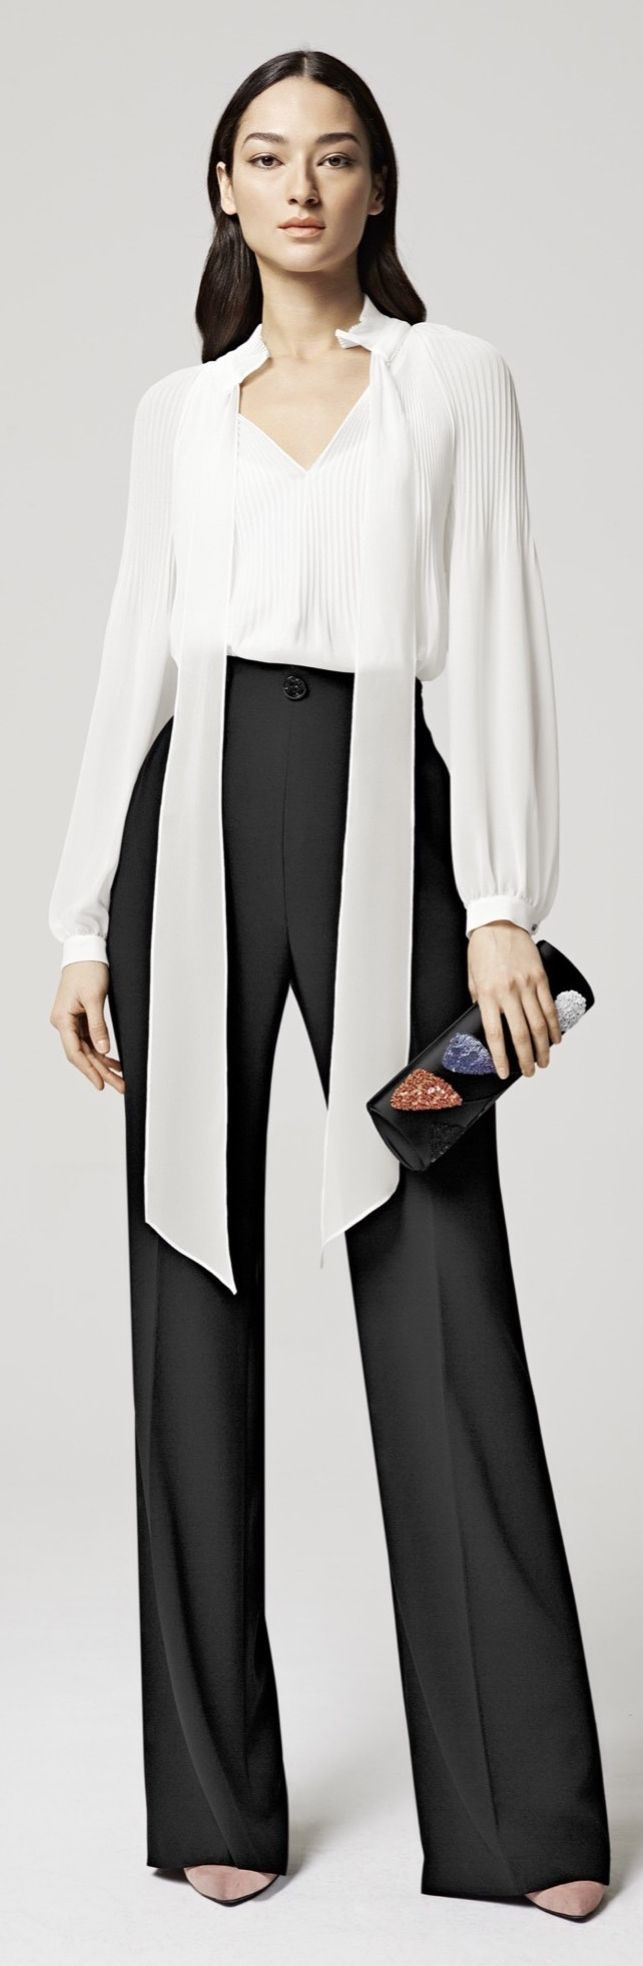 Escada Resort 2016: